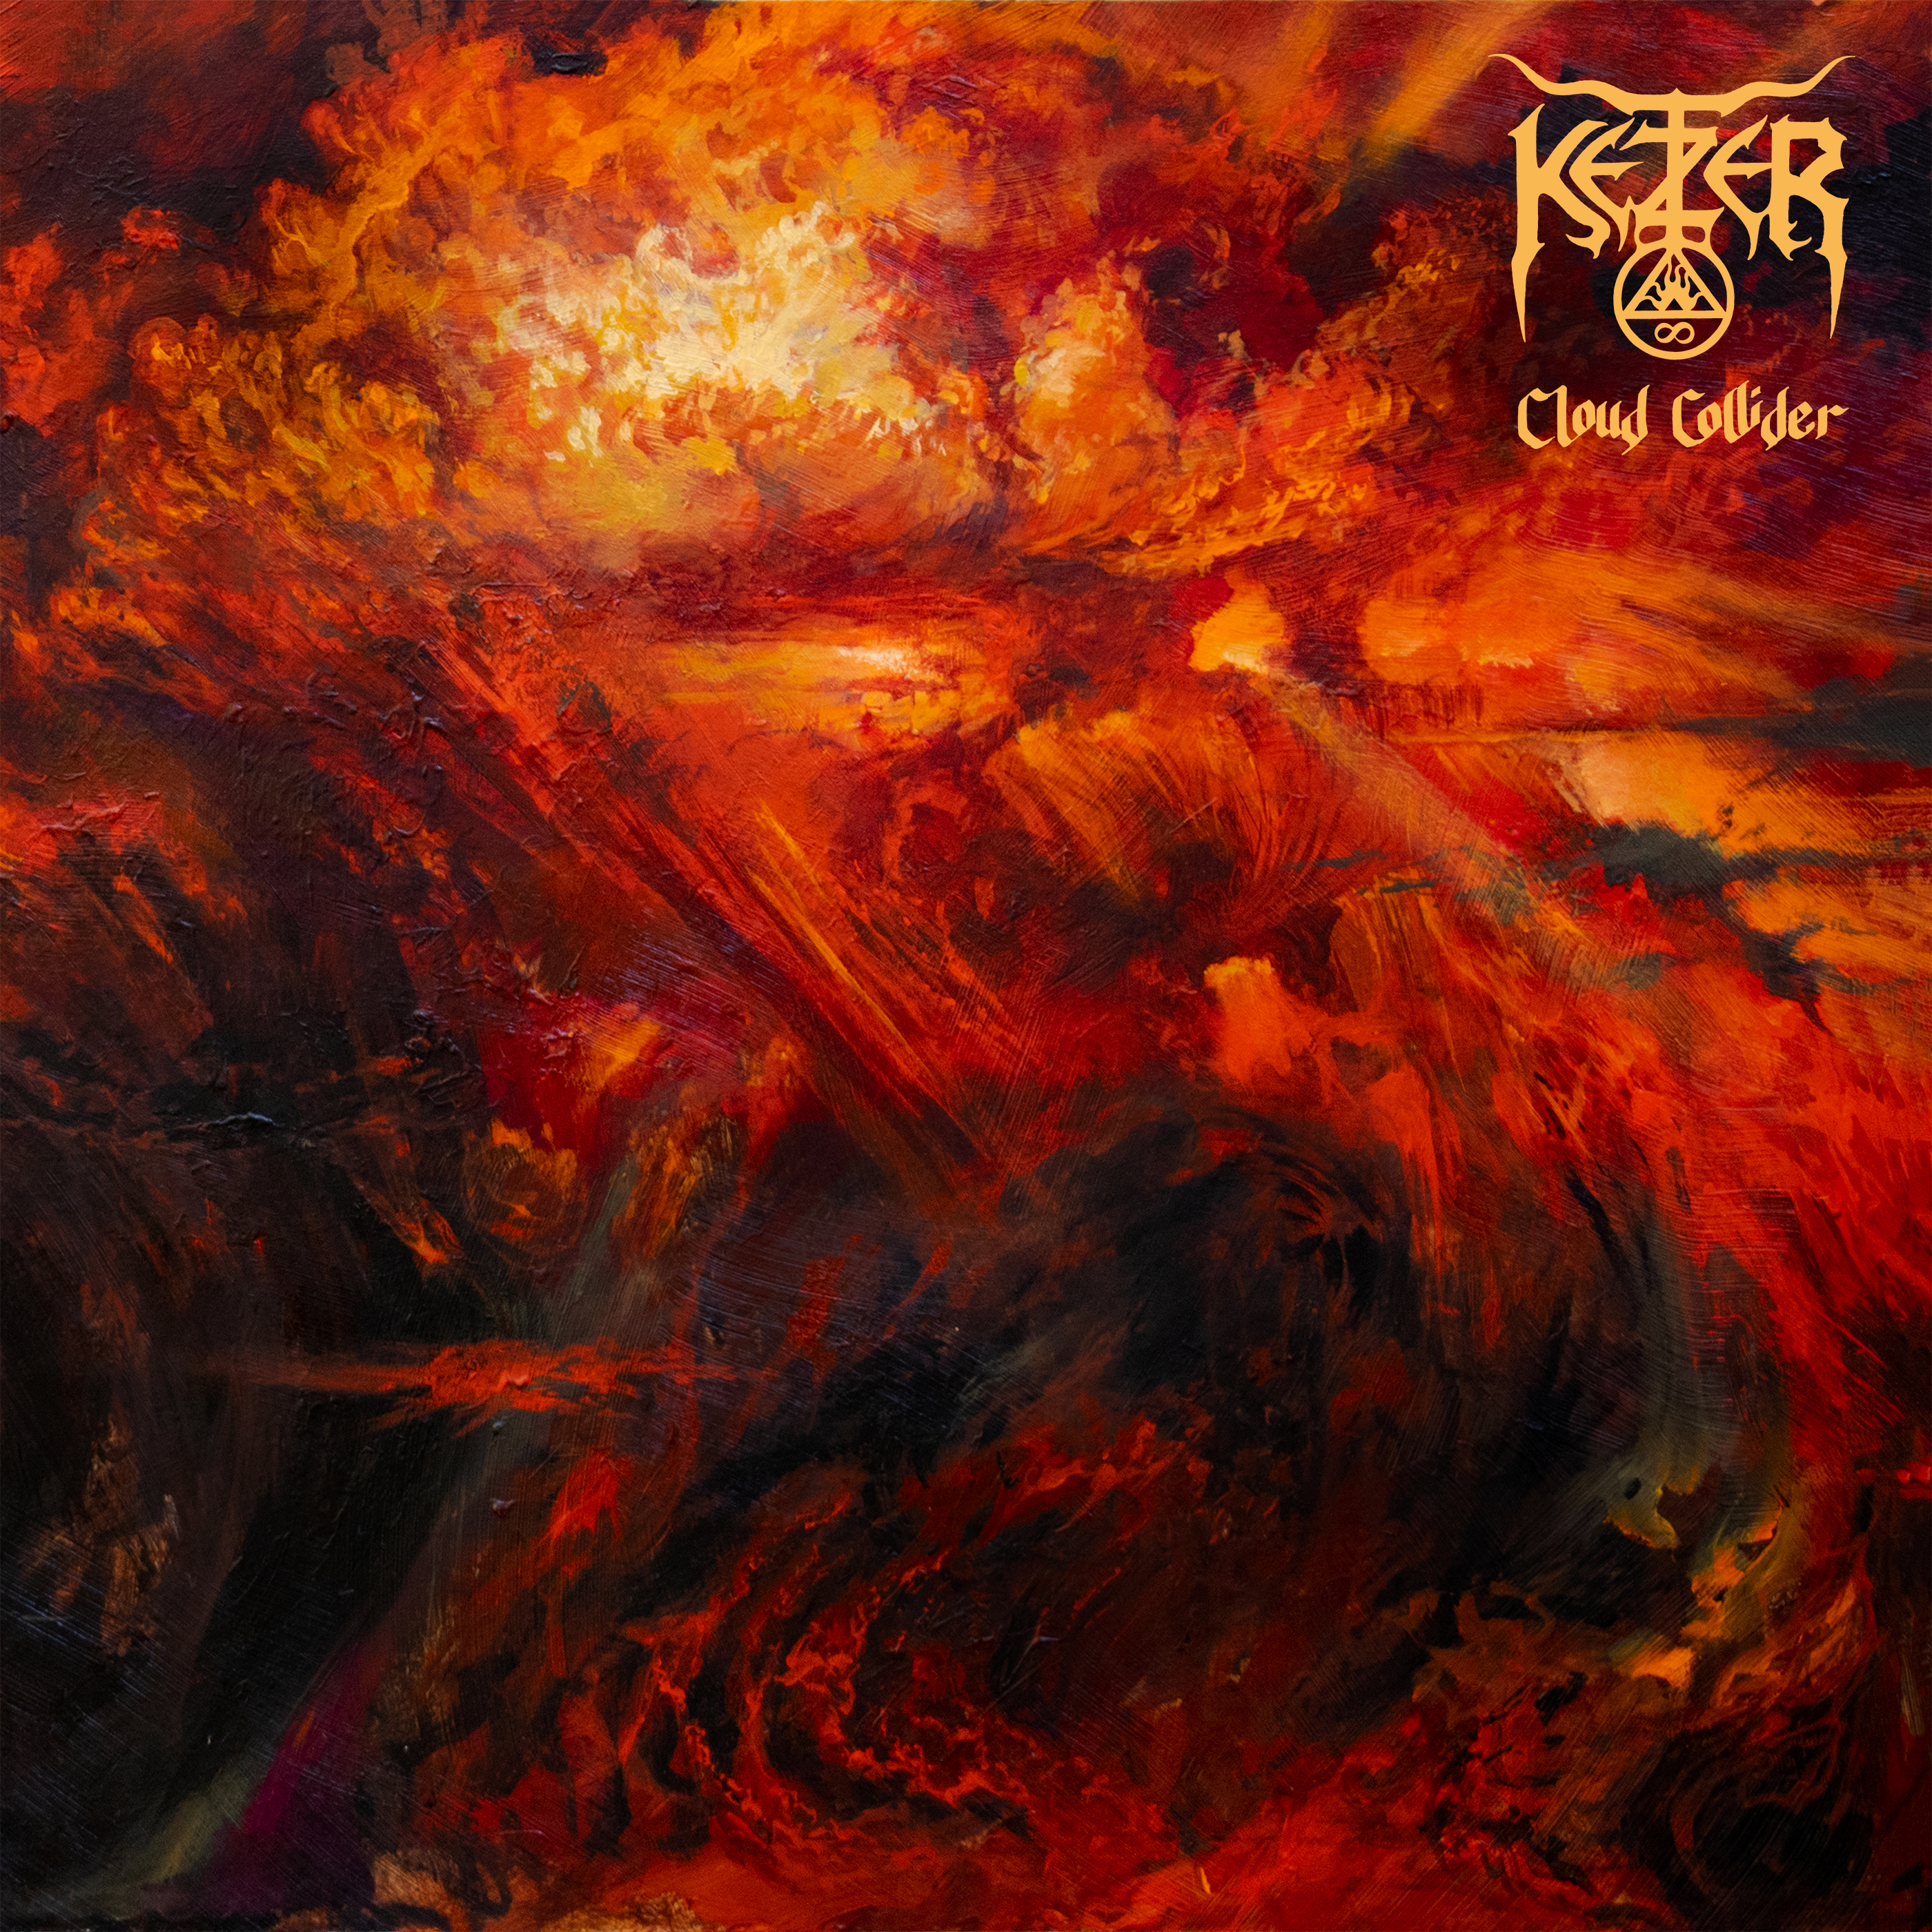 ketzer-cloud-collider-brachiale-schoenheit-album-review